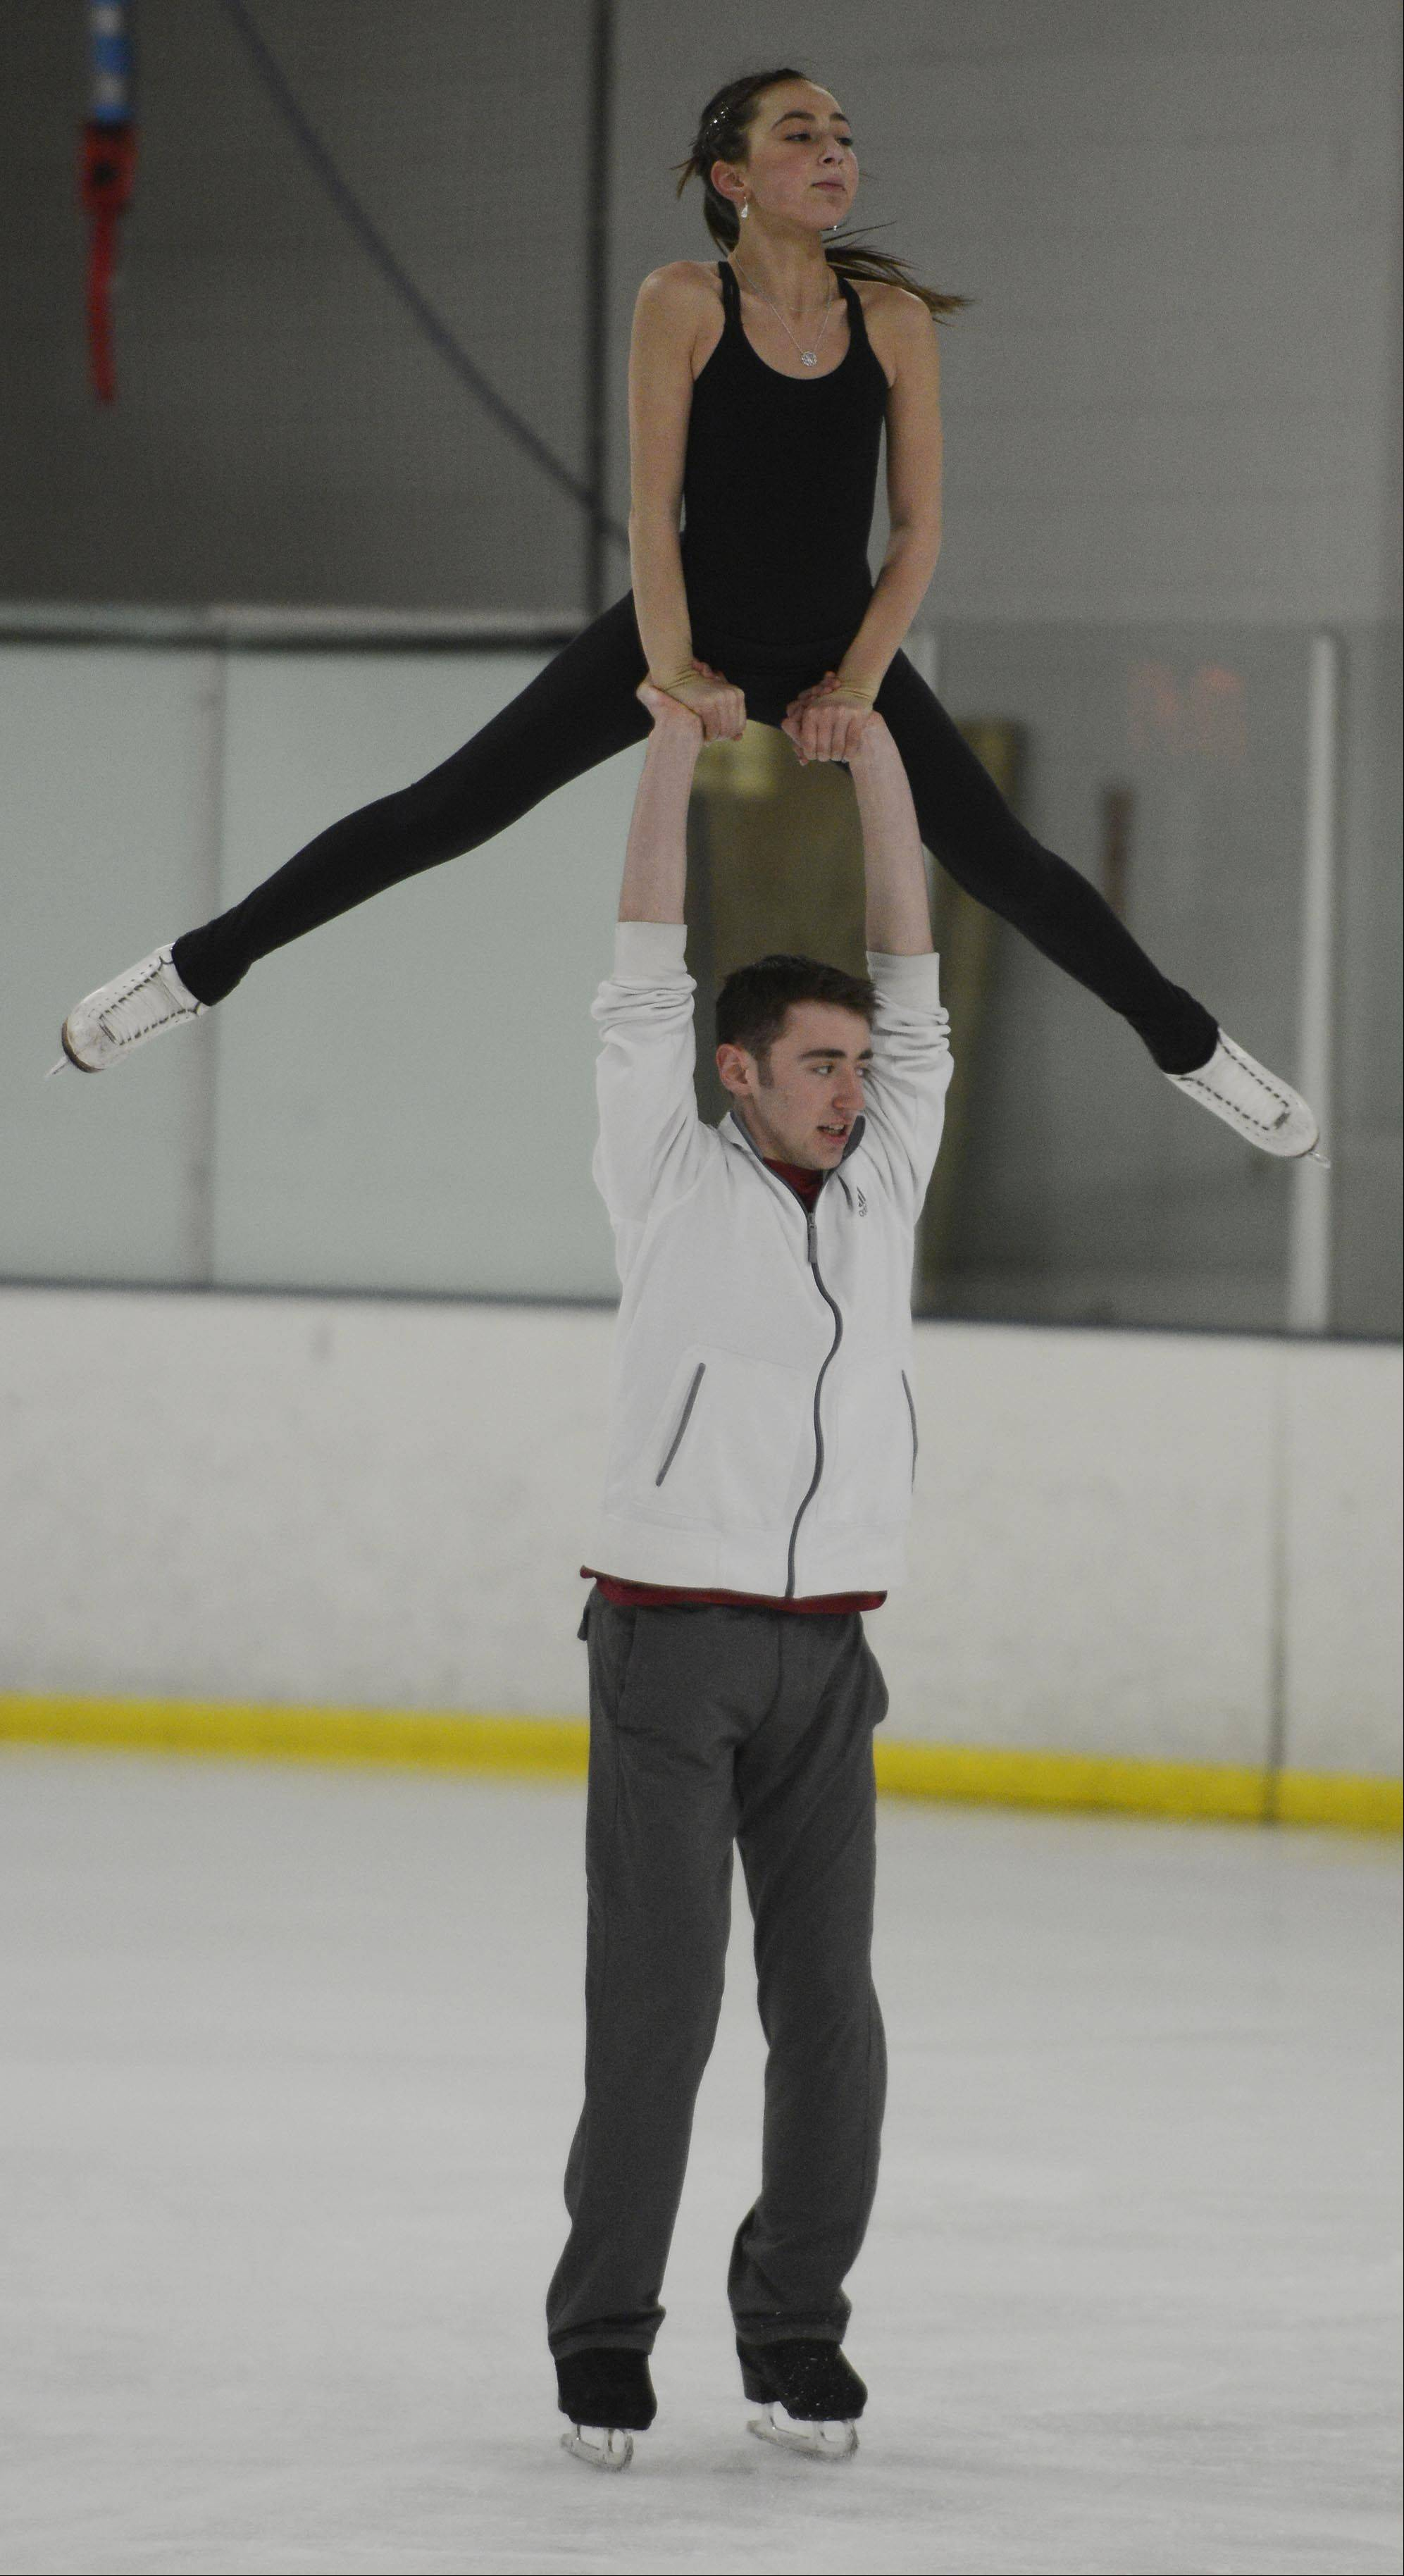 Novice pairs skaters Lindsay Weinstein of Buffalo Grove and Jacob Simon of Highland Park skate practice at Twin Rinks.